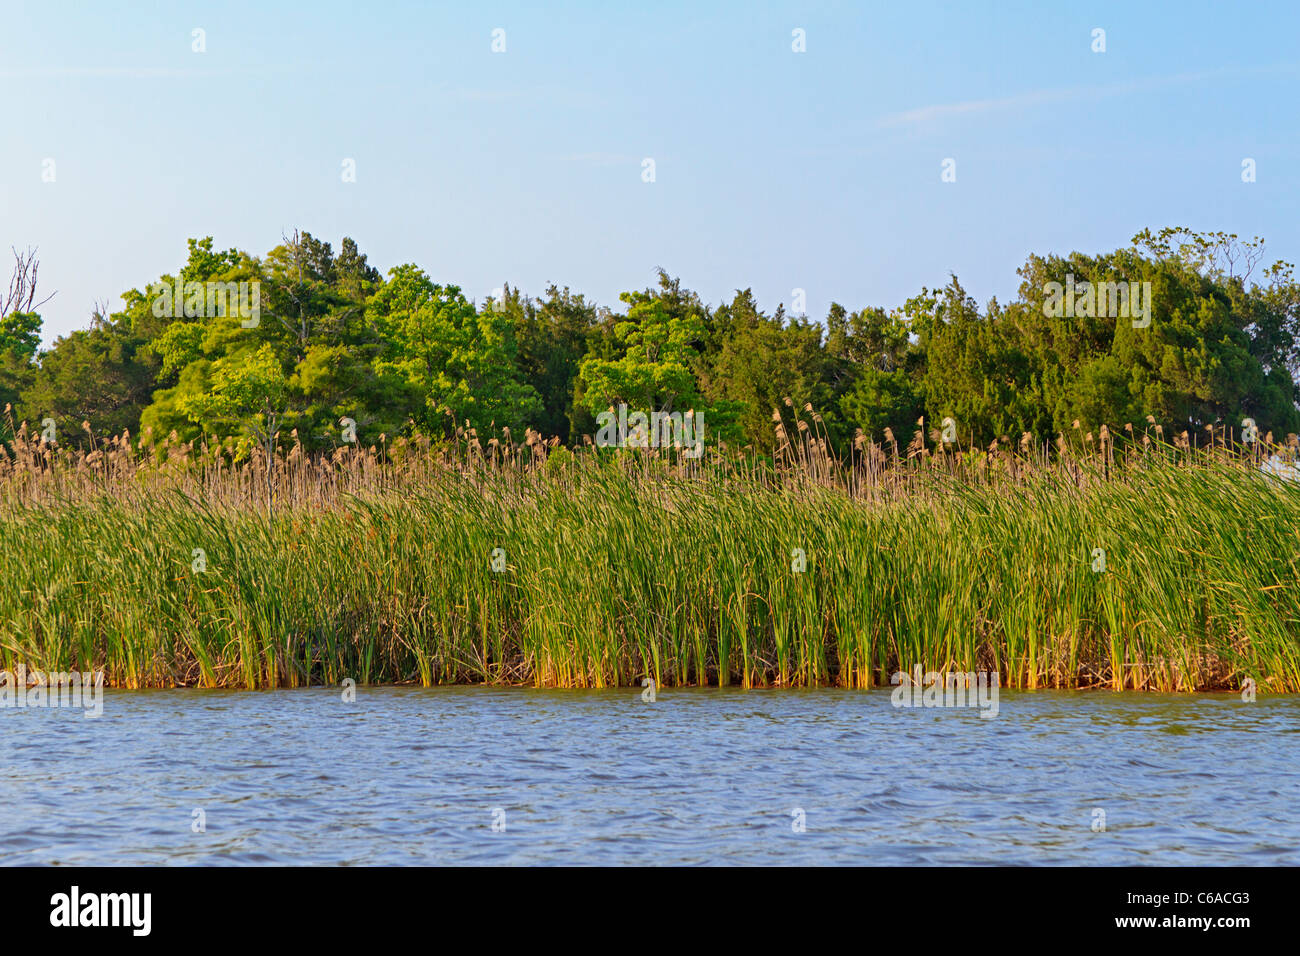 Sea oats and sawgrass with hard wood trees along the Apalachicola River in the town of Apalachicola along the Florida - Stock Image